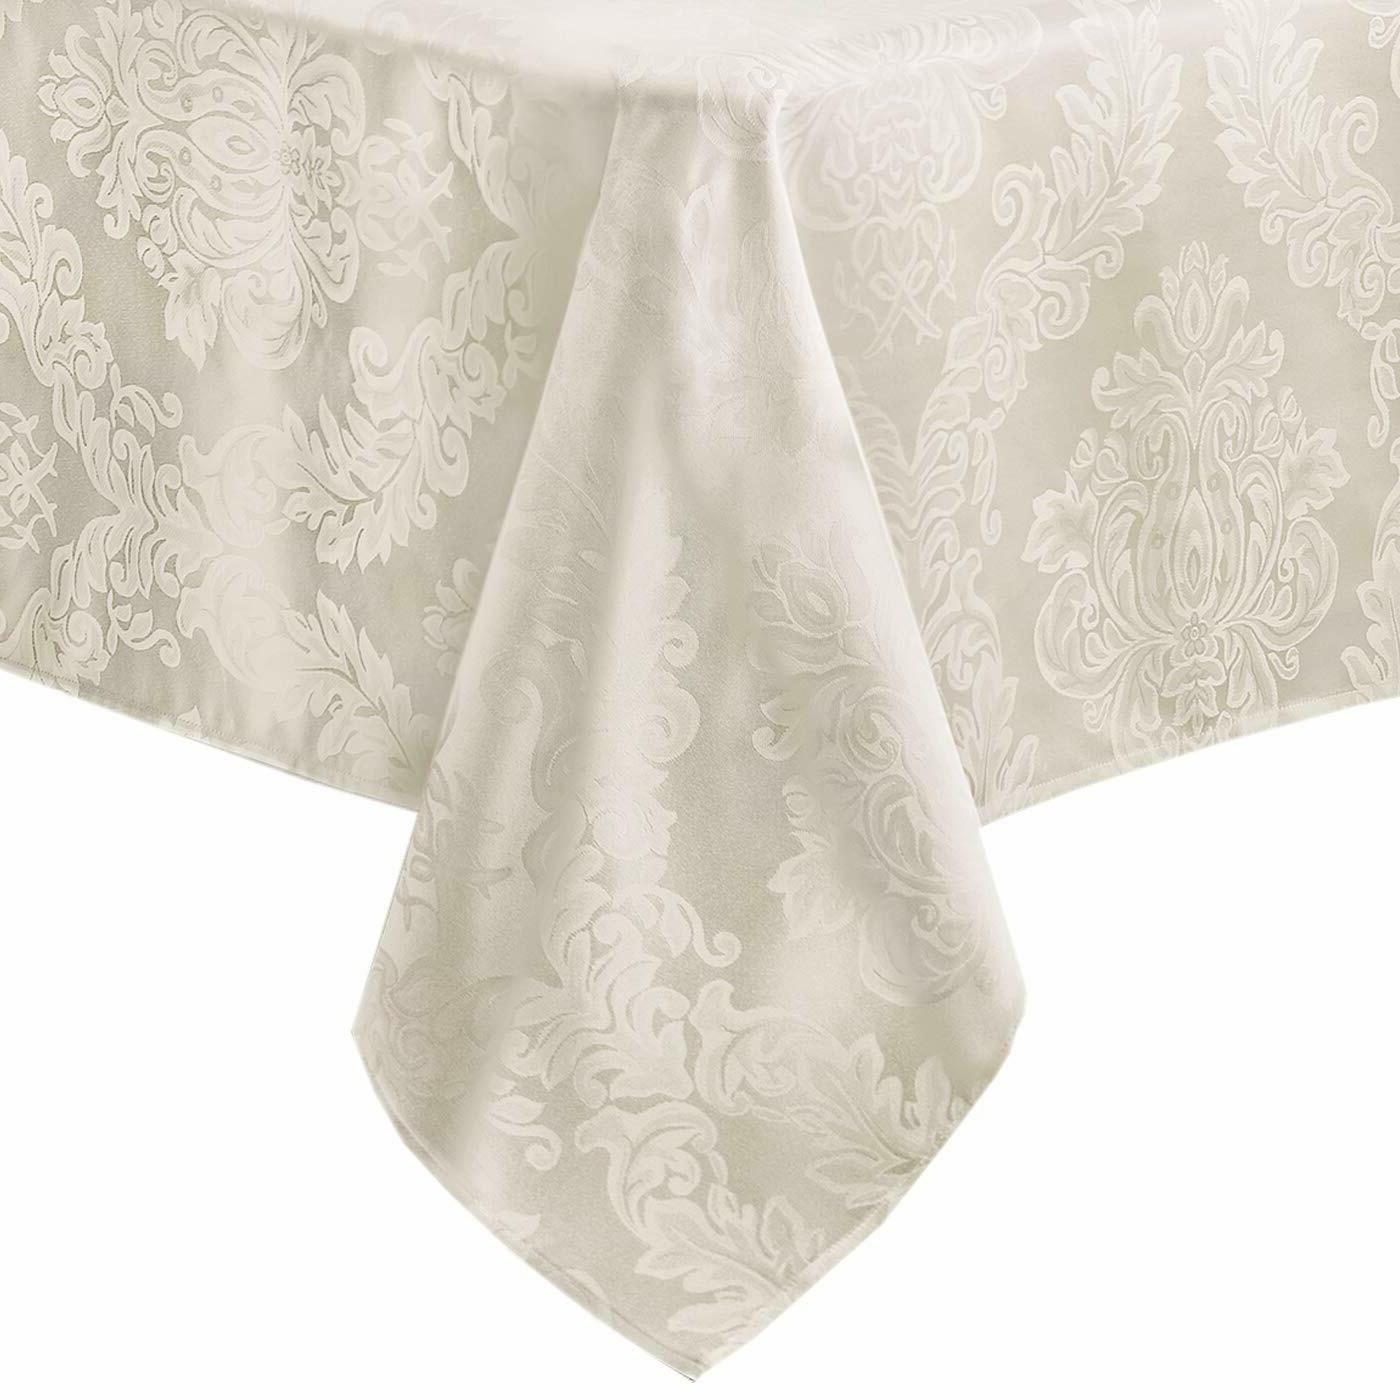 Fabric Dining Tablecloths